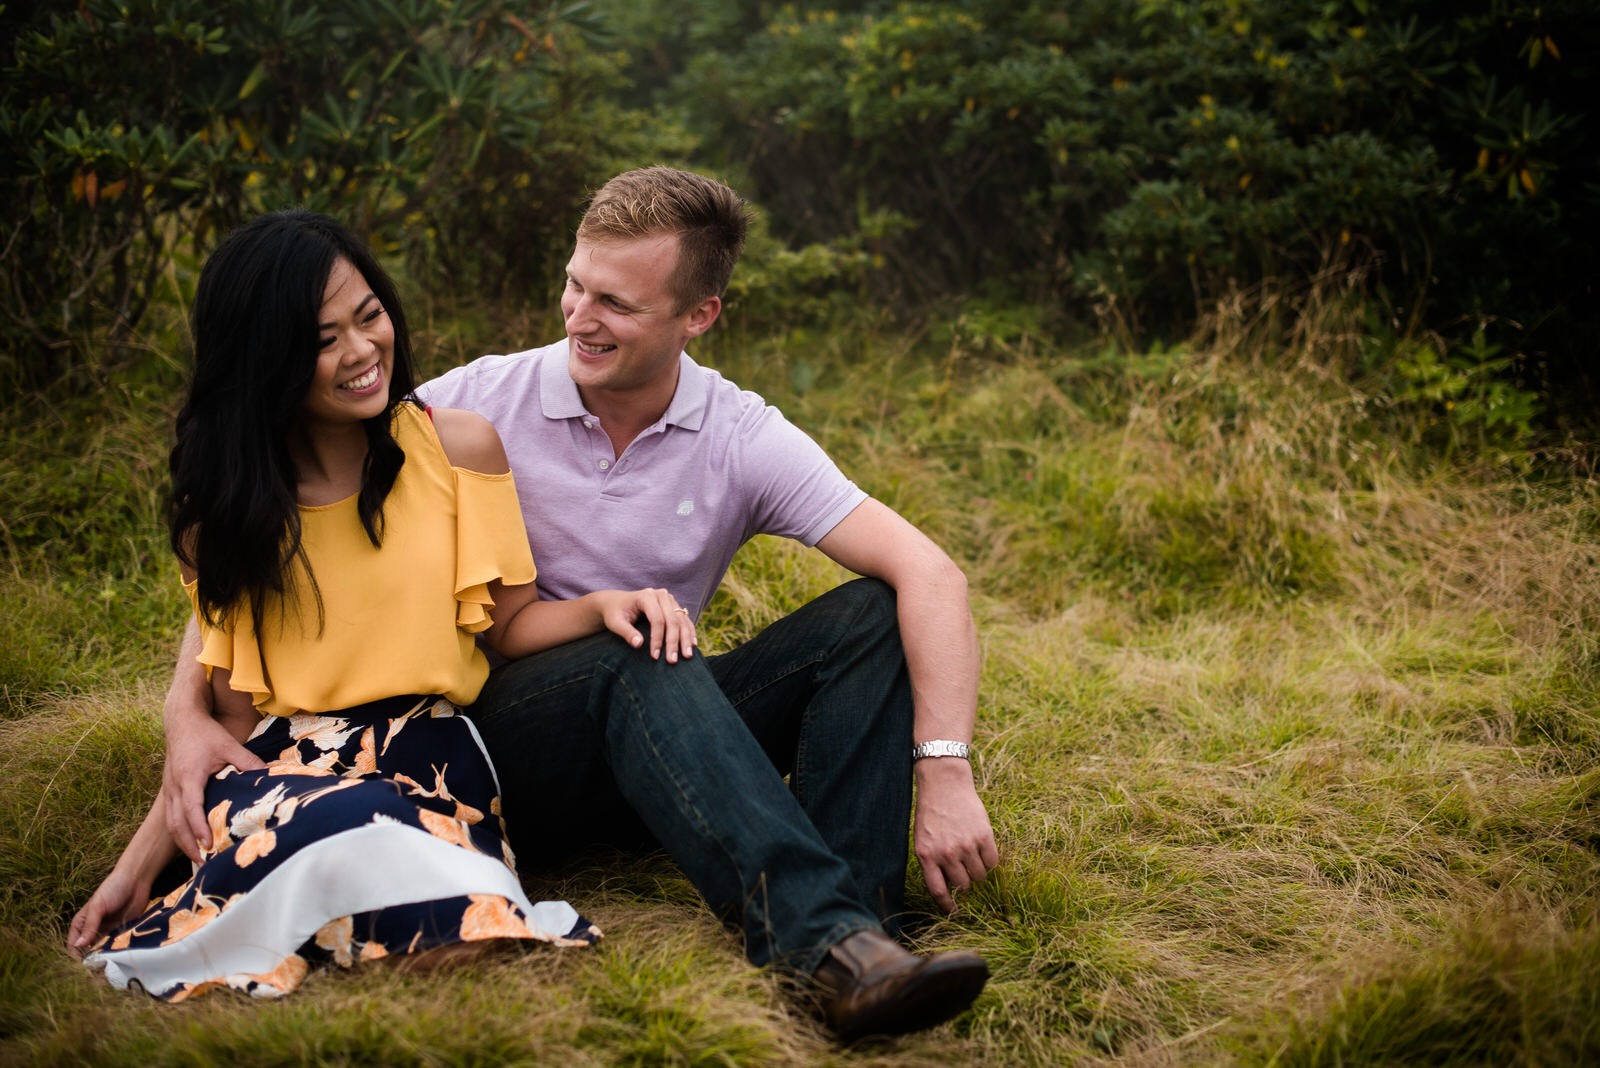 Craggy-Gardens-Engagement-Session-73.jpg